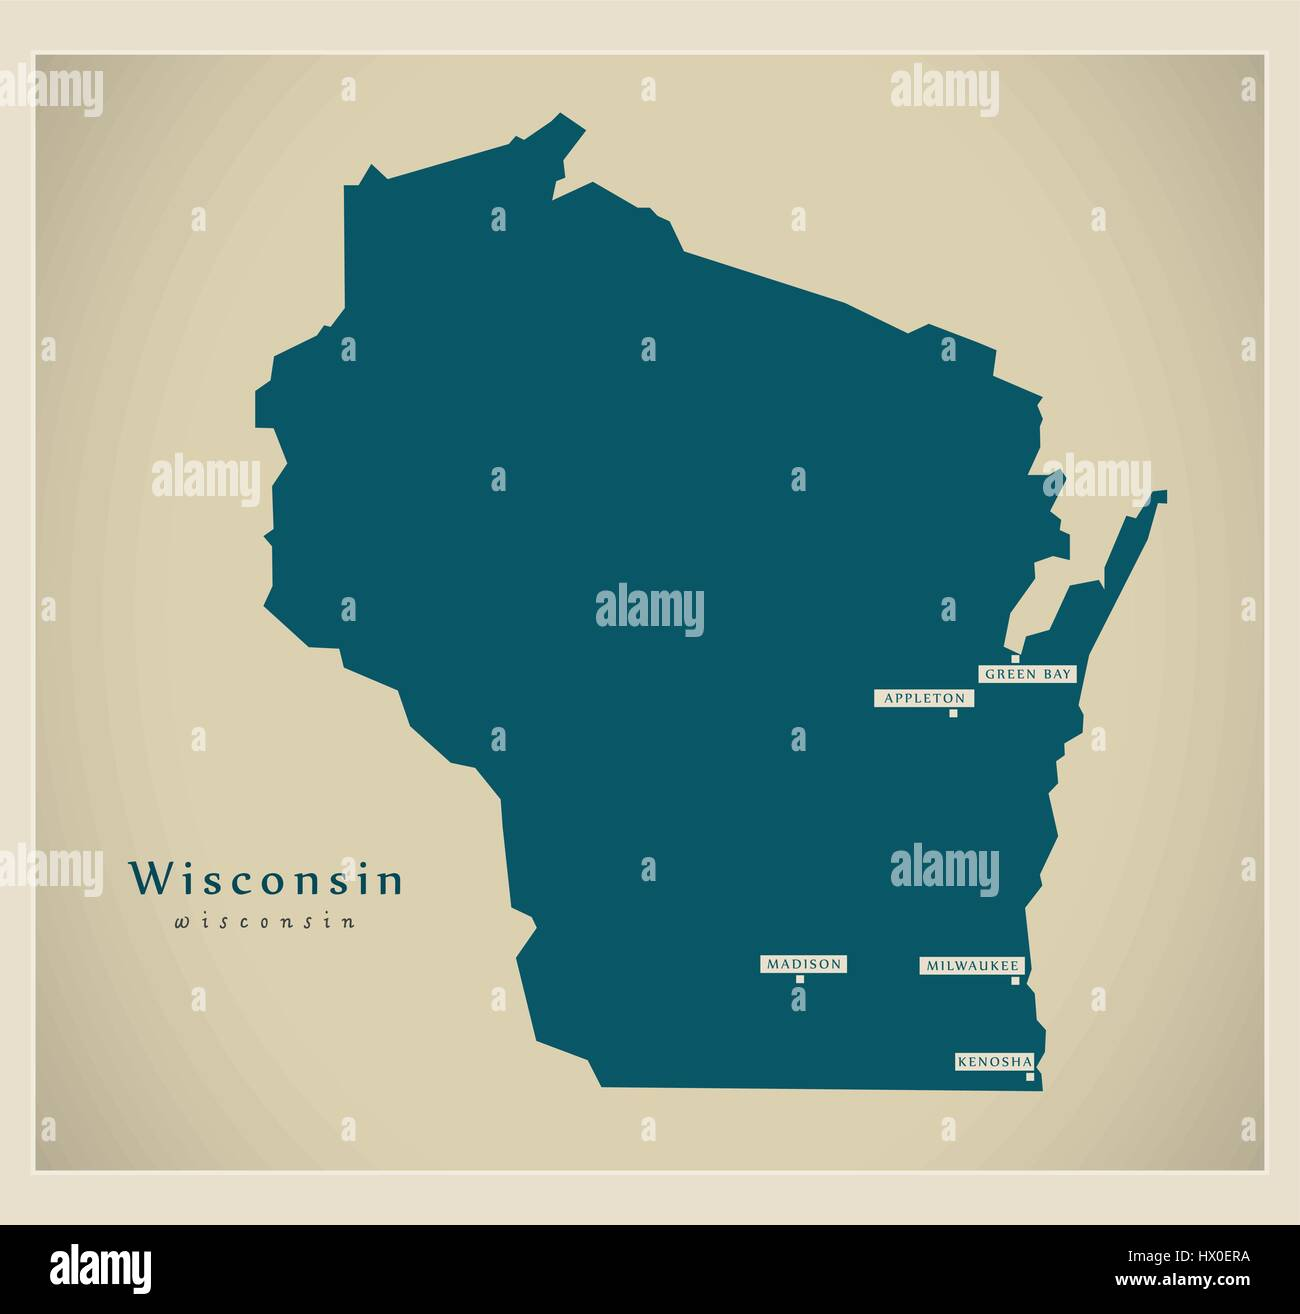 Modern Map Wisconsin USA Stock Vector Art Illustration Vector